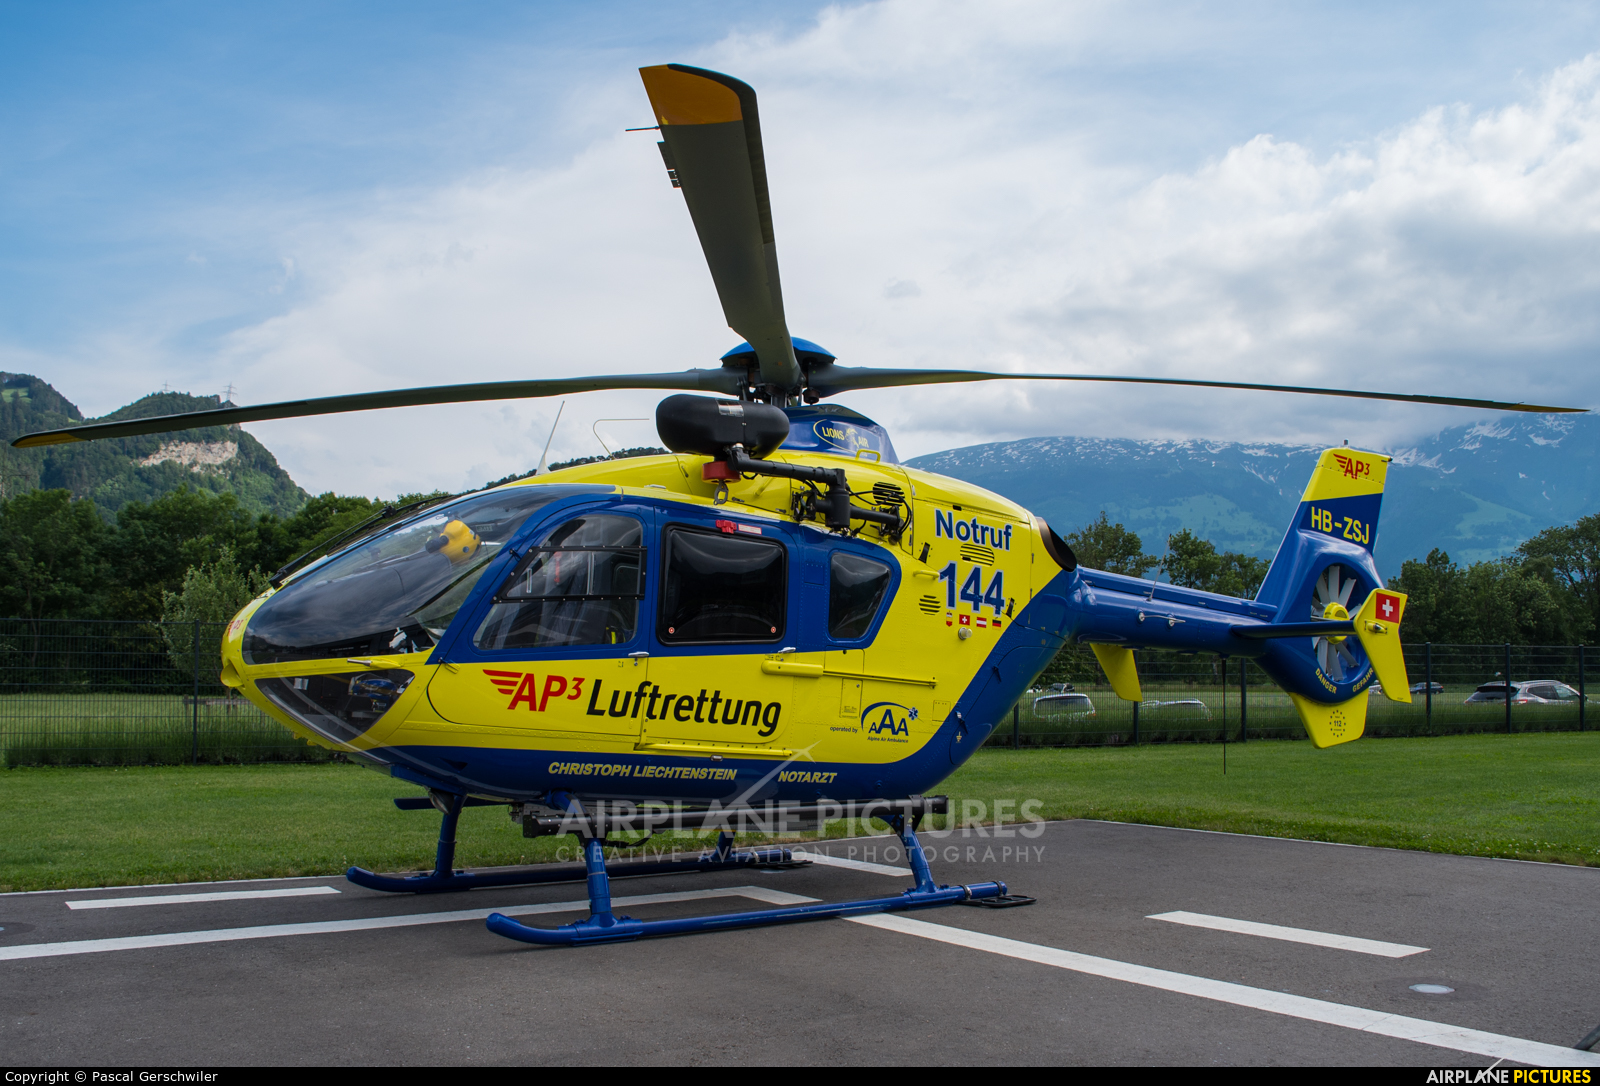 Private HB-ZSJ aircraft at Balzers heliport